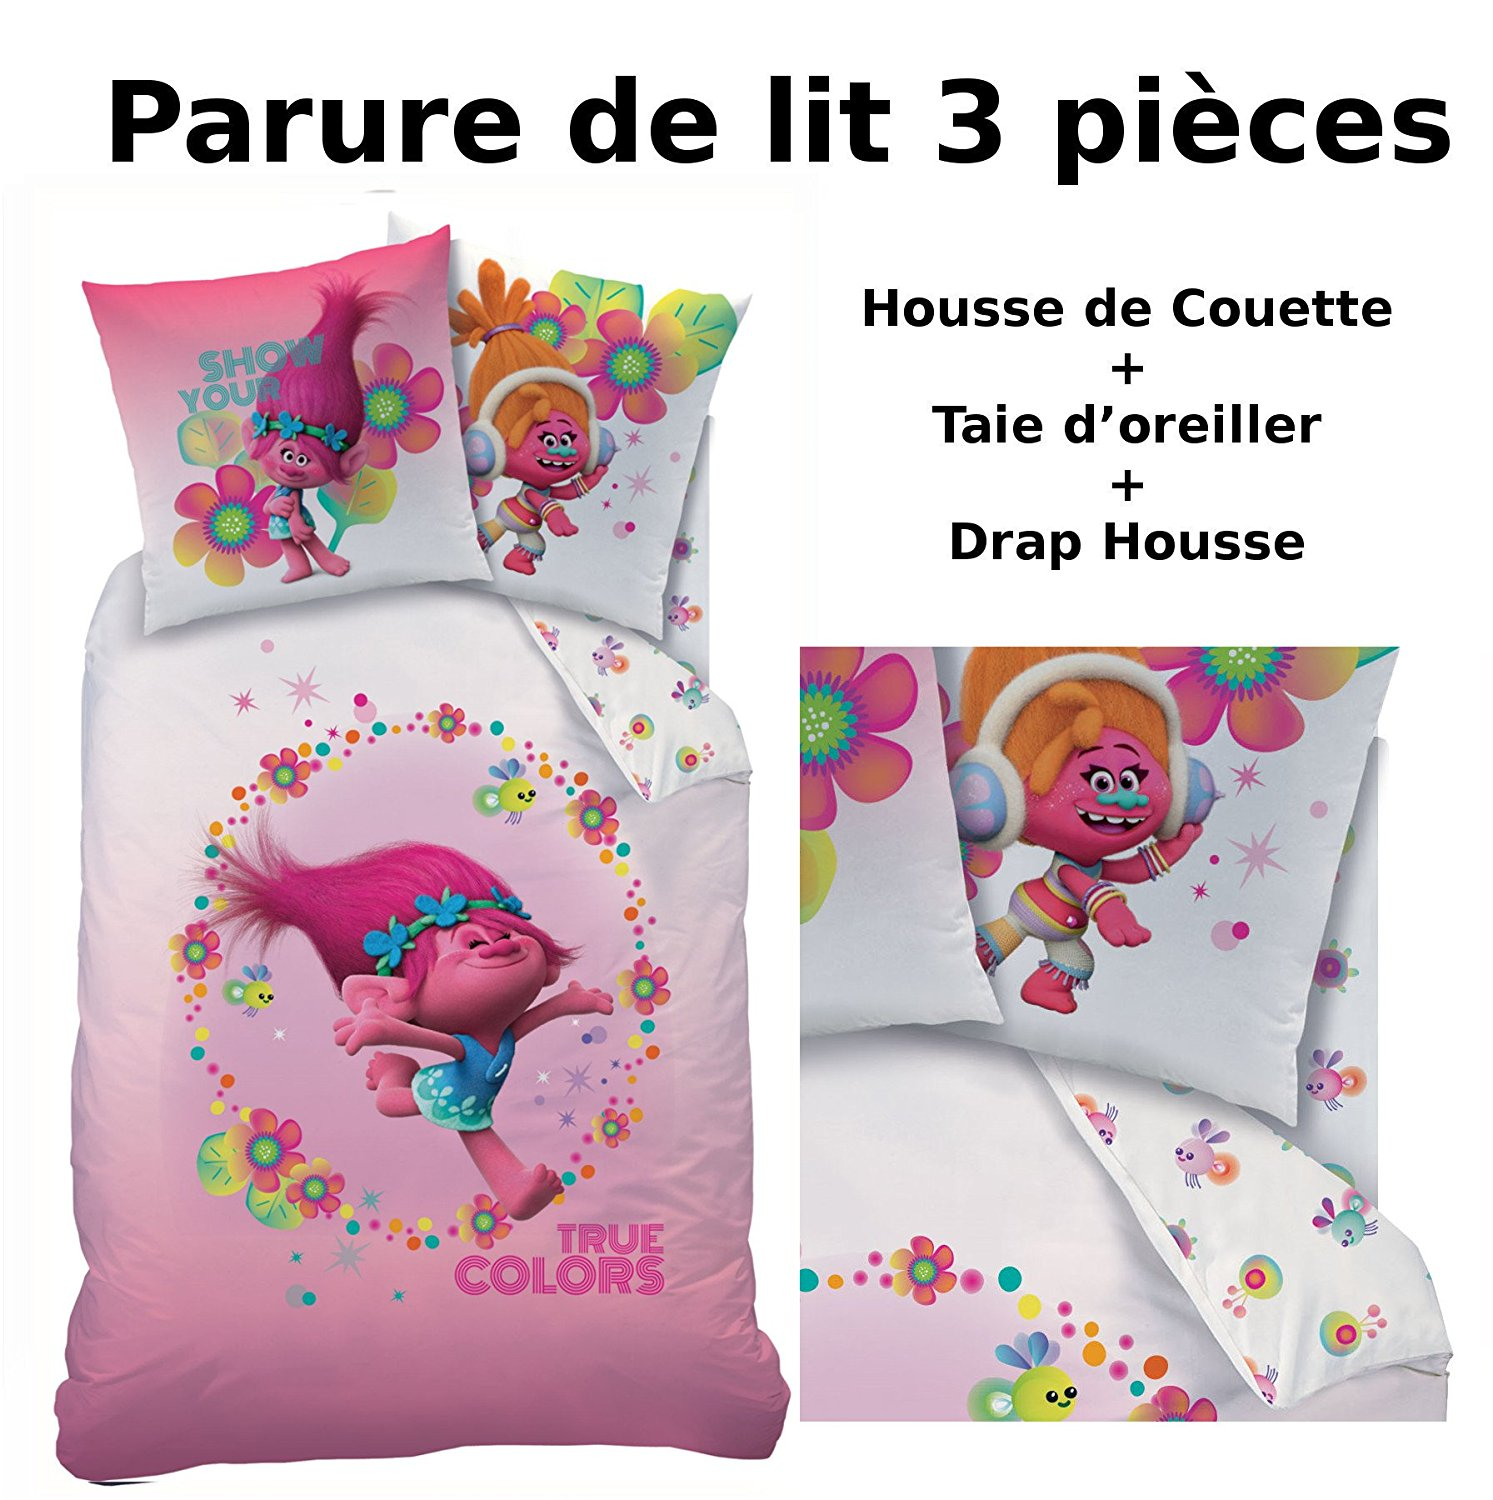 trolls parure de lit 3pcs housse de couette taie d 39 oreiller drap housse true colors. Black Bedroom Furniture Sets. Home Design Ideas